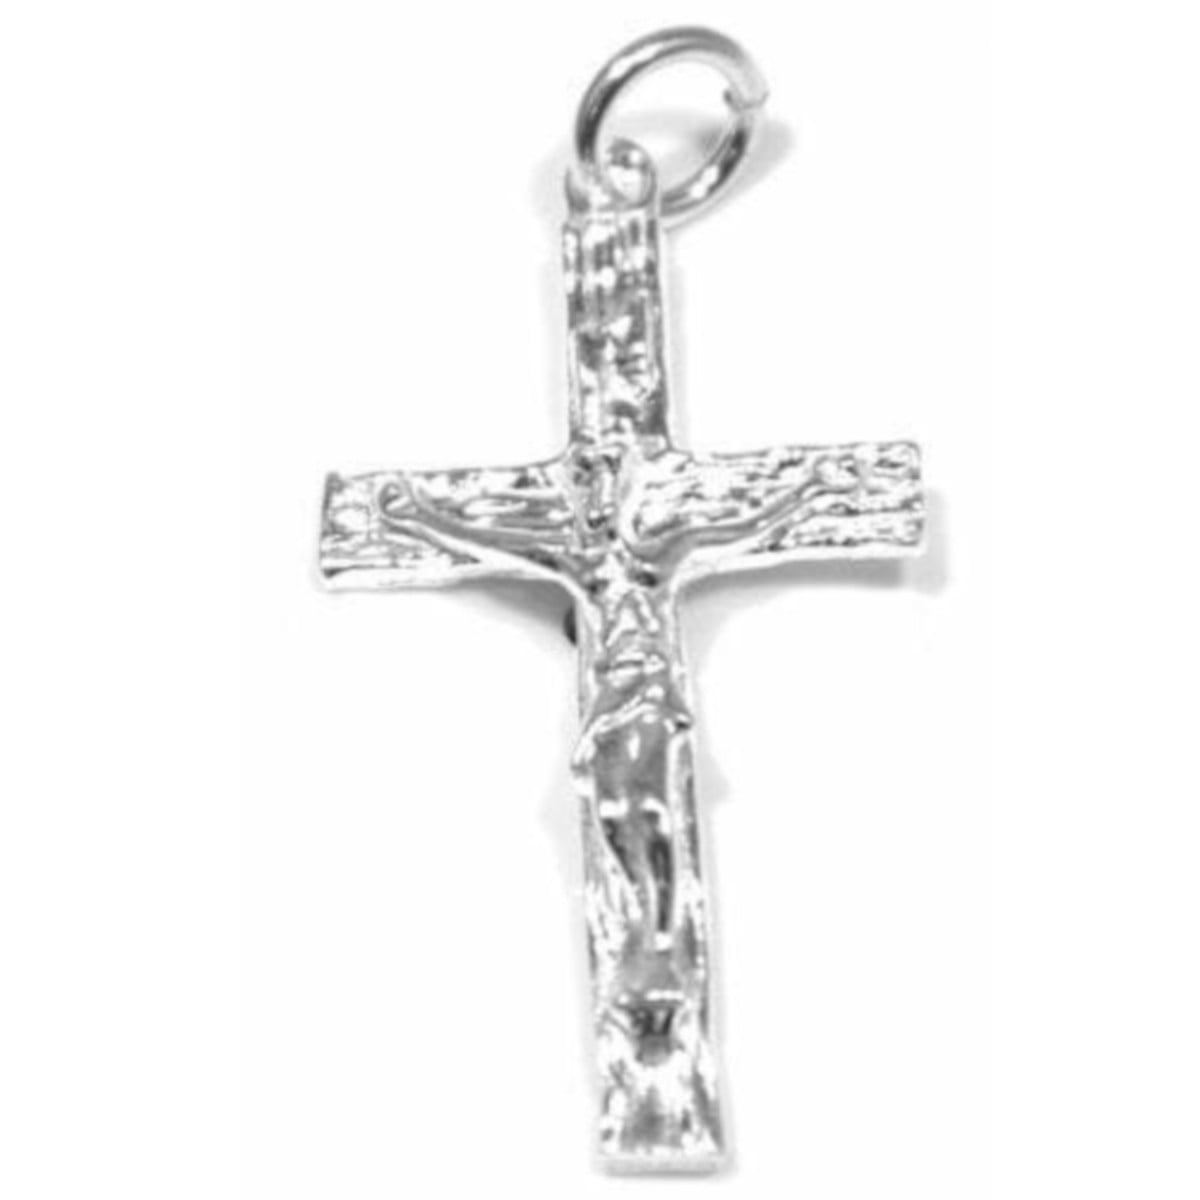 Crucifix pendant charm in sterling silver